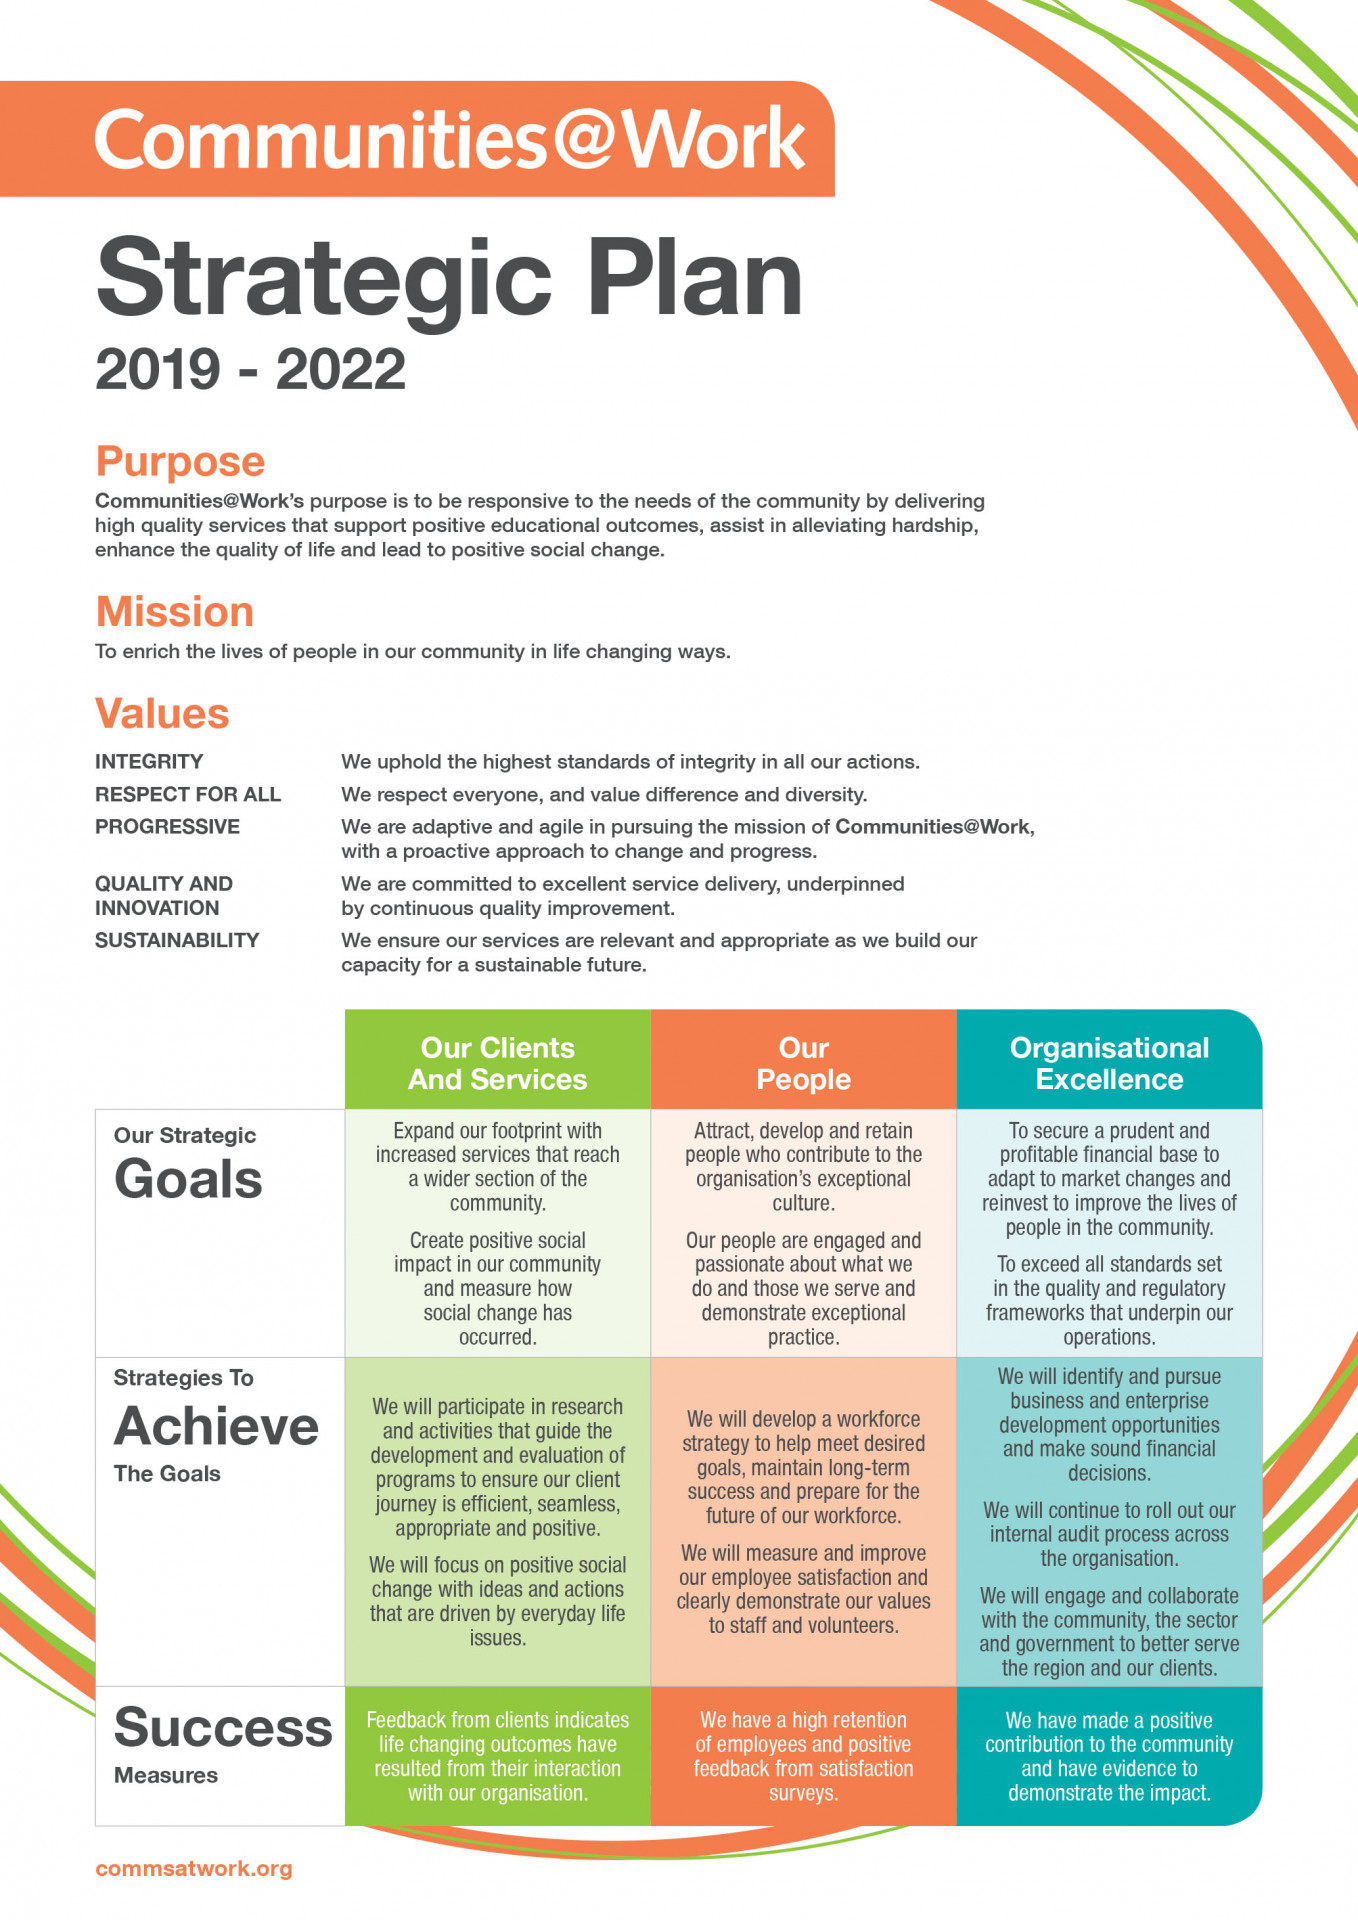 Communities@Work Strategic Plan 2019-2022